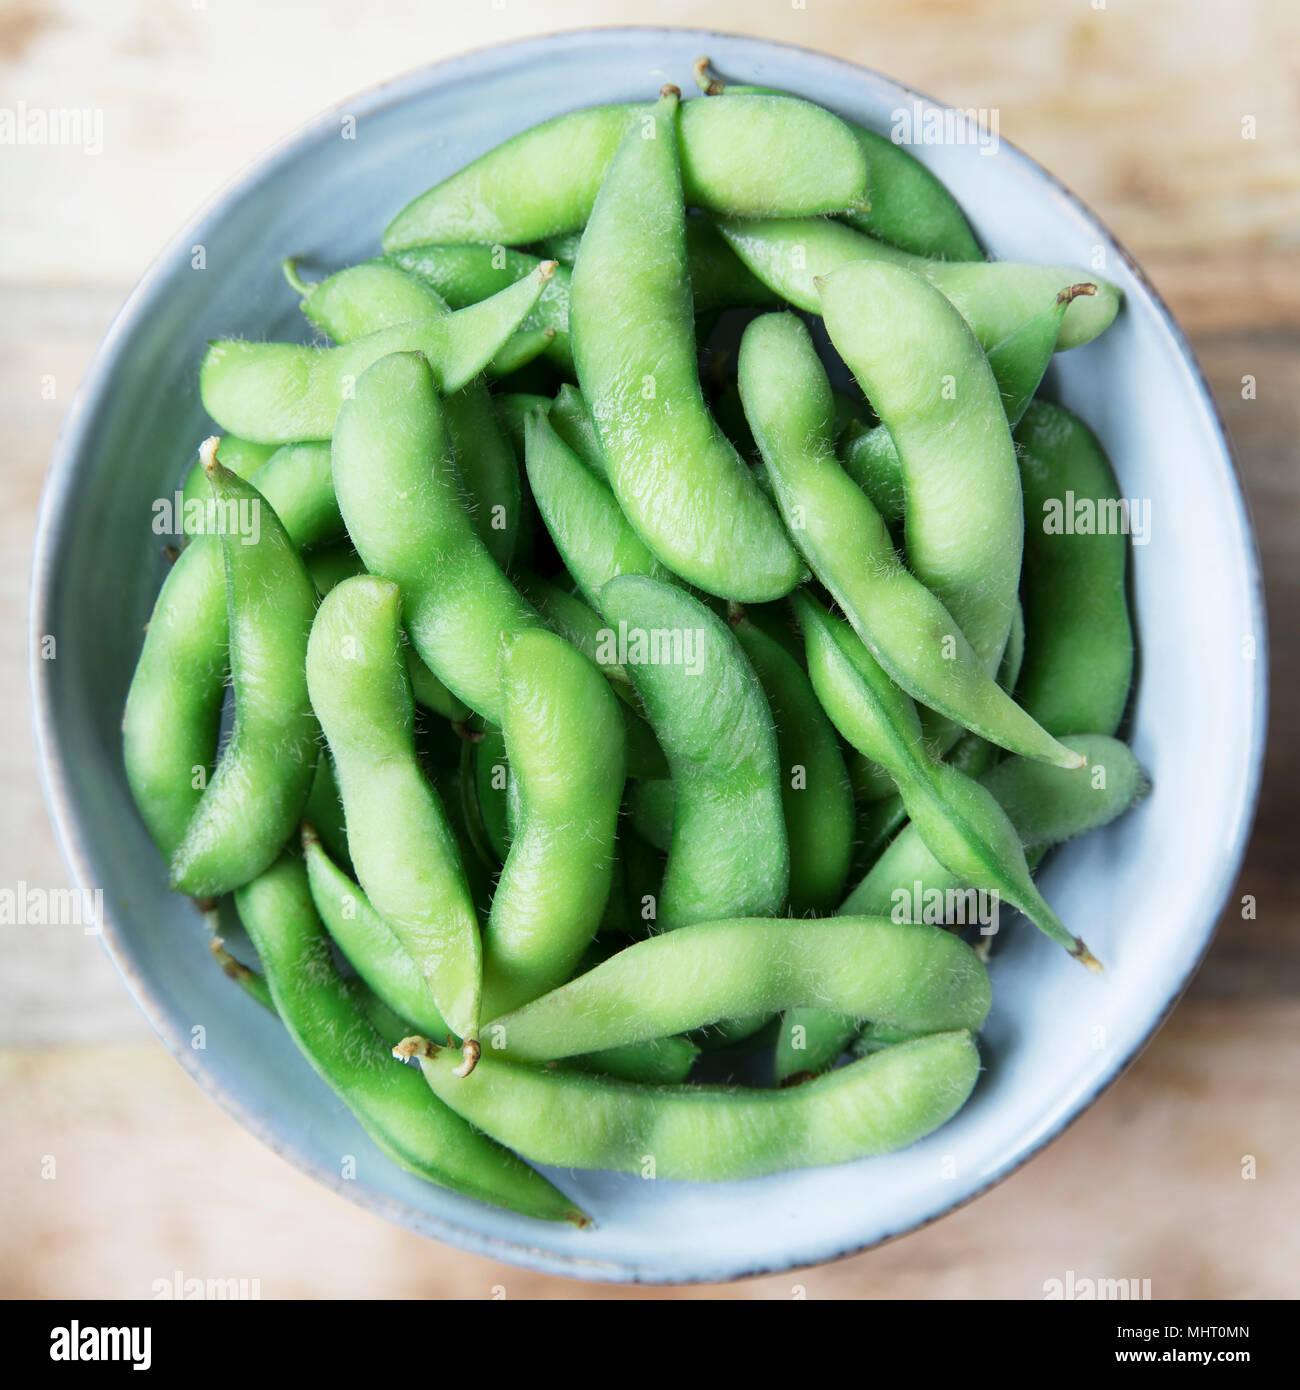 Fresh edamame in blue bowl from above. - Stock Image